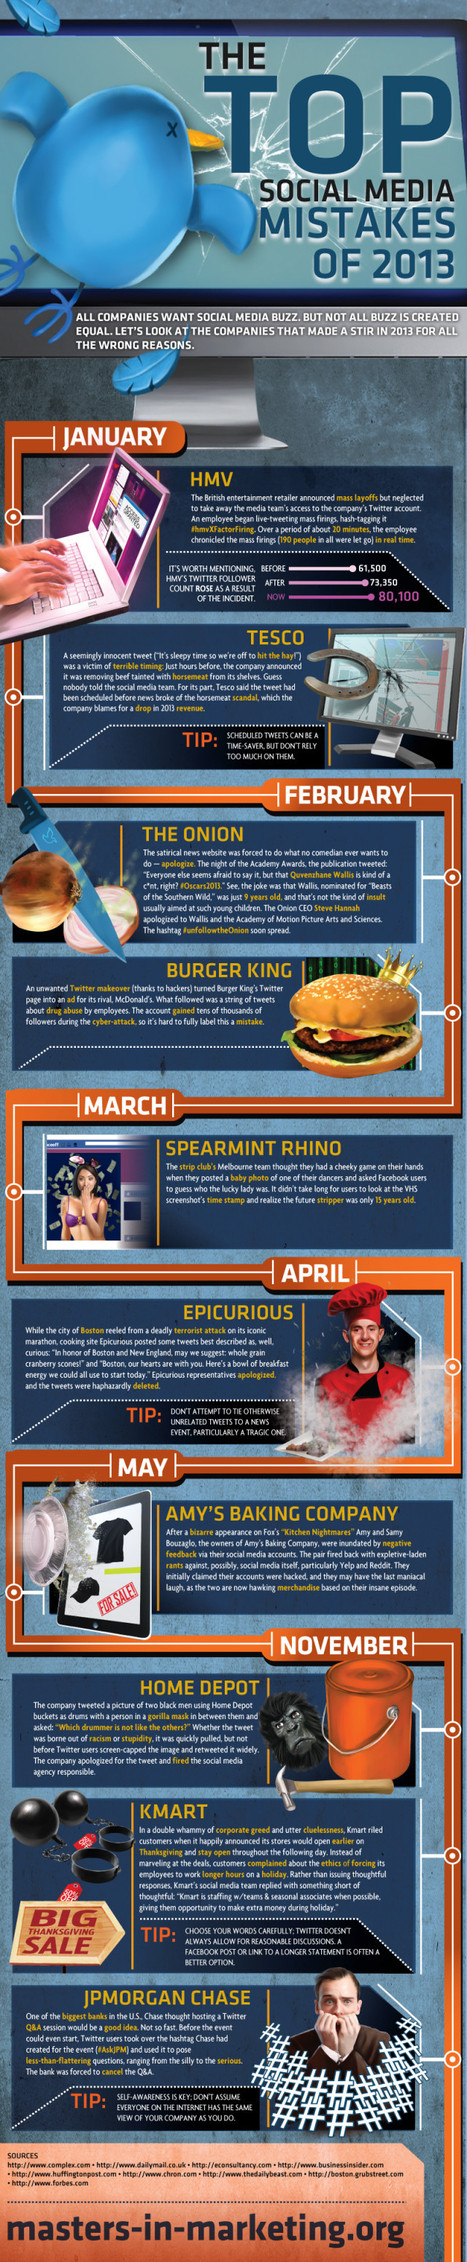 The Top Social Media Mistakes of 2013 #Infographic | digital marketing strategy | Scoop.it